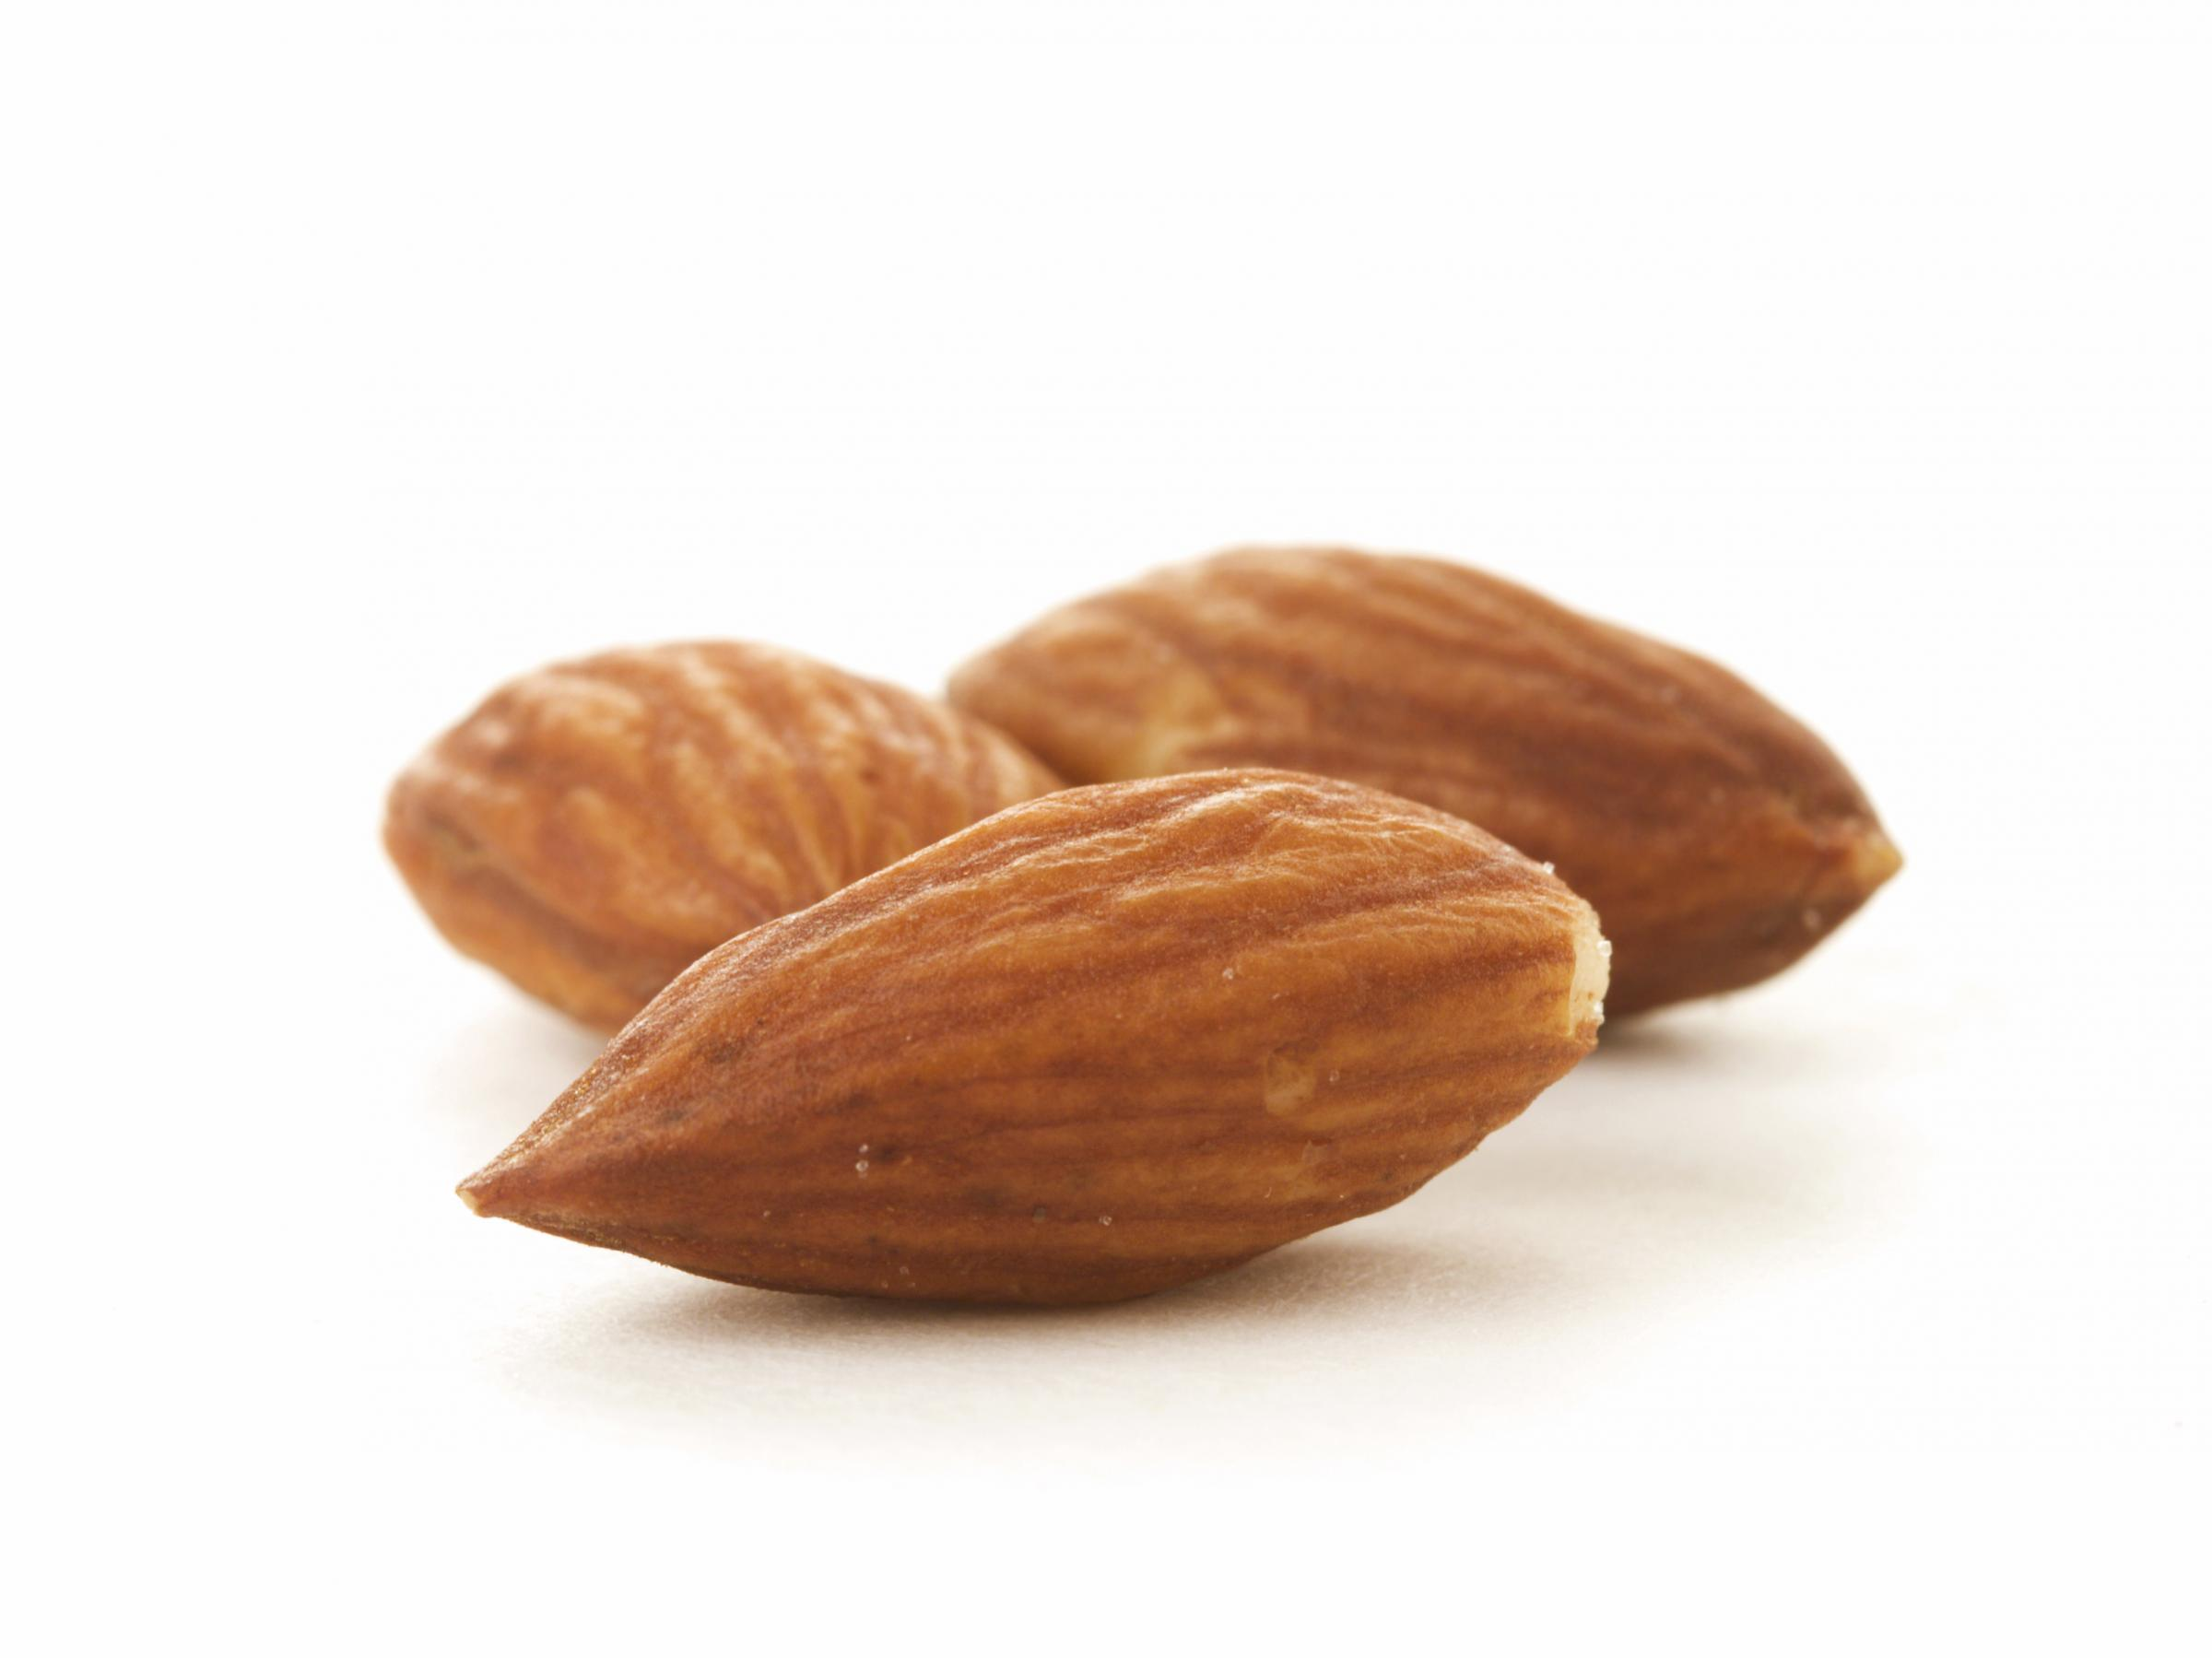 Why Do We Describe Asian Eyes As 'Almond-Shaped'? | WLRN Almond